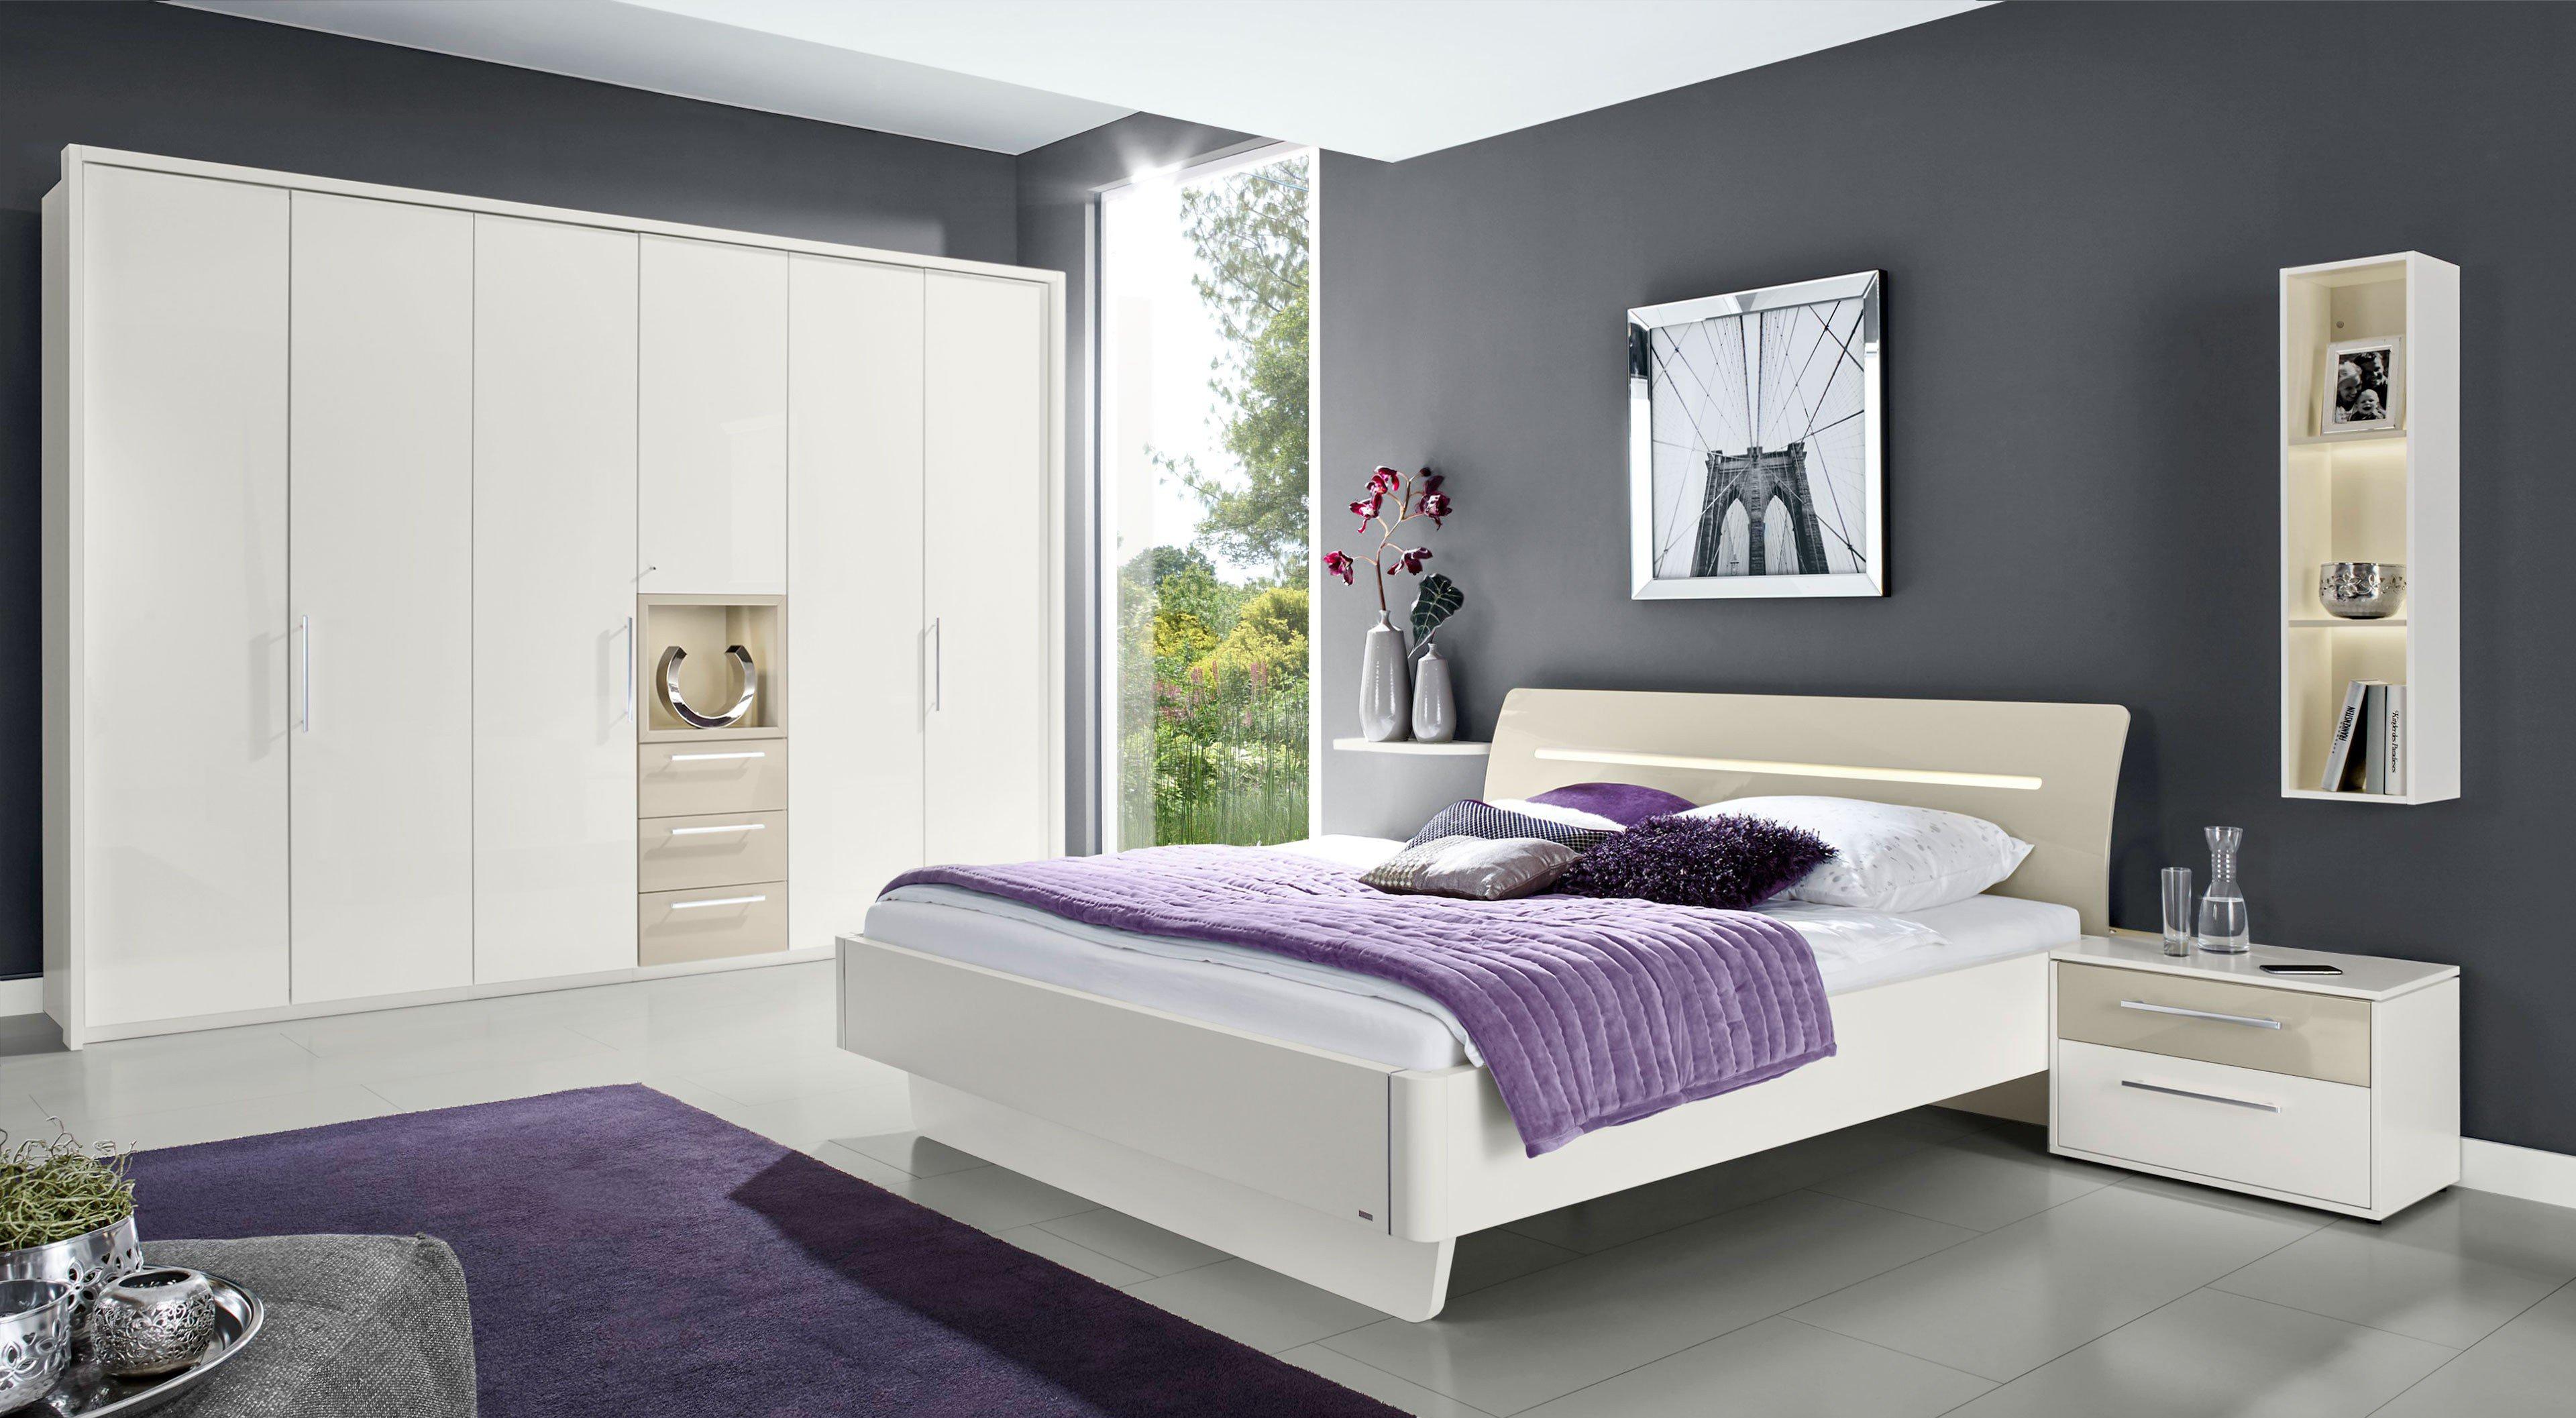 schlafzimmer hochglanz schlafzimmer hochglanz m. Black Bedroom Furniture Sets. Home Design Ideas